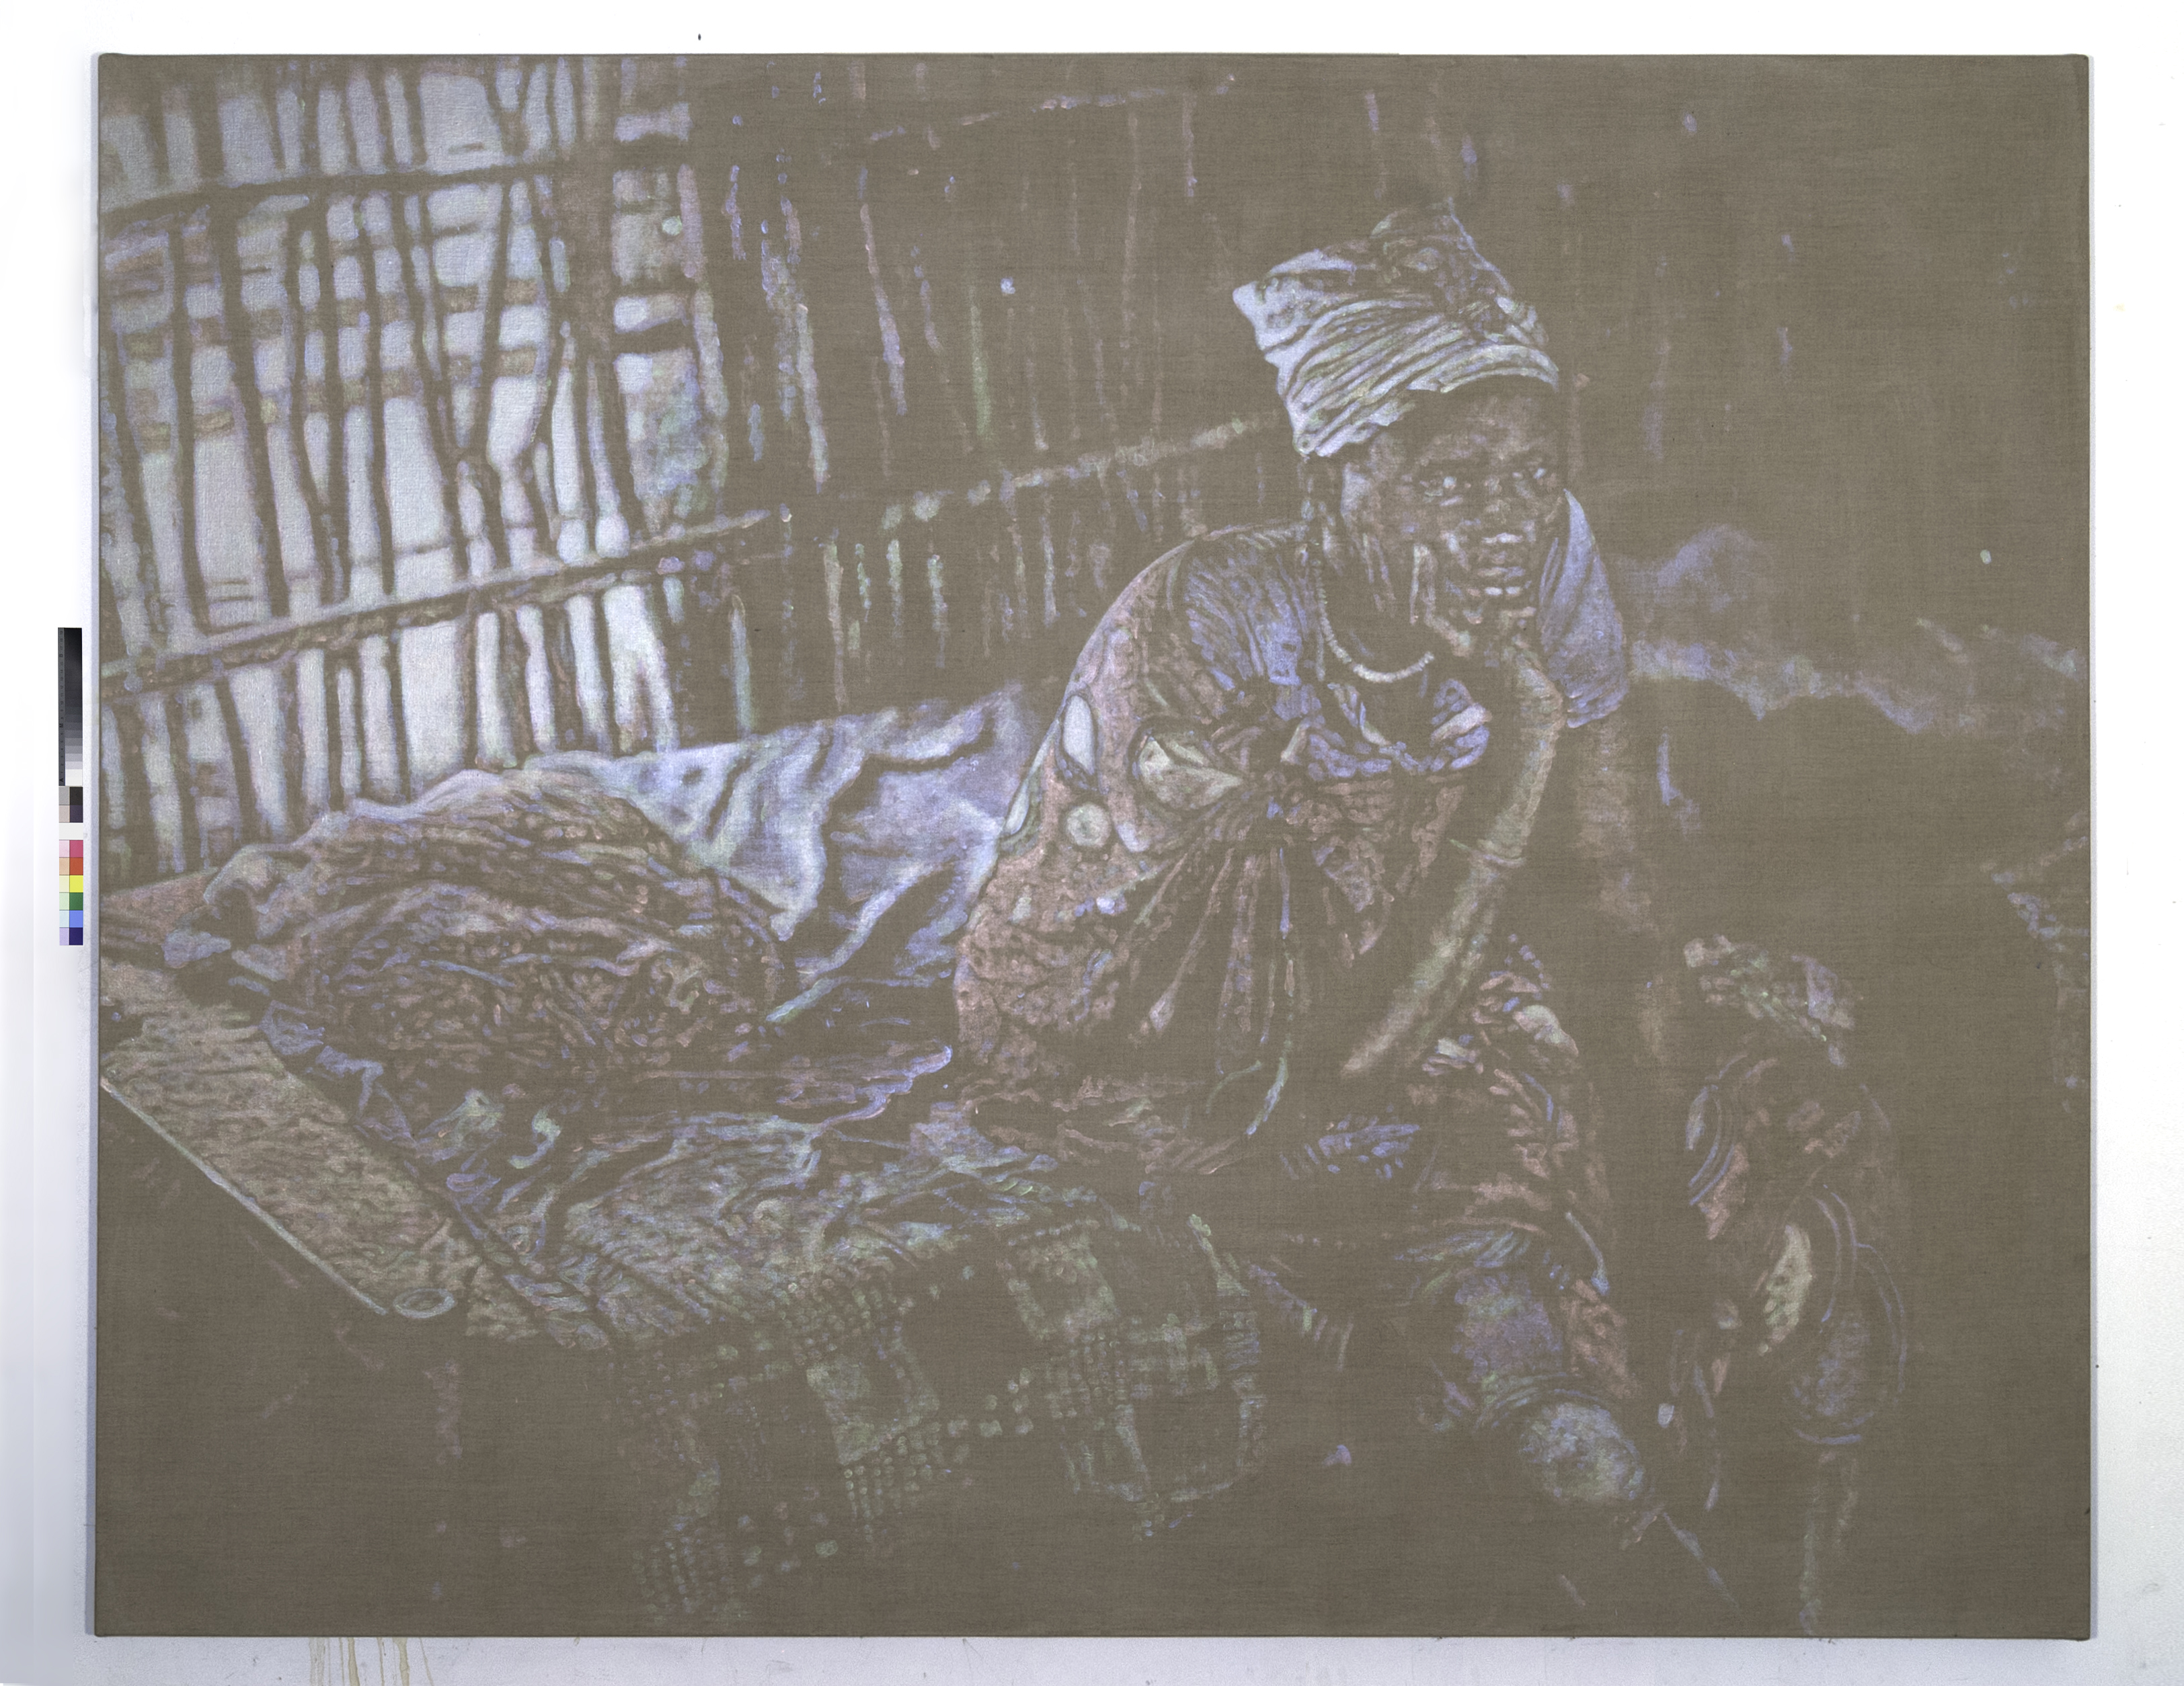 Davide Cantoni, Refugee Hut Sudan RGB, 2018 , Acrylics on Linen, 72 x 90 inches